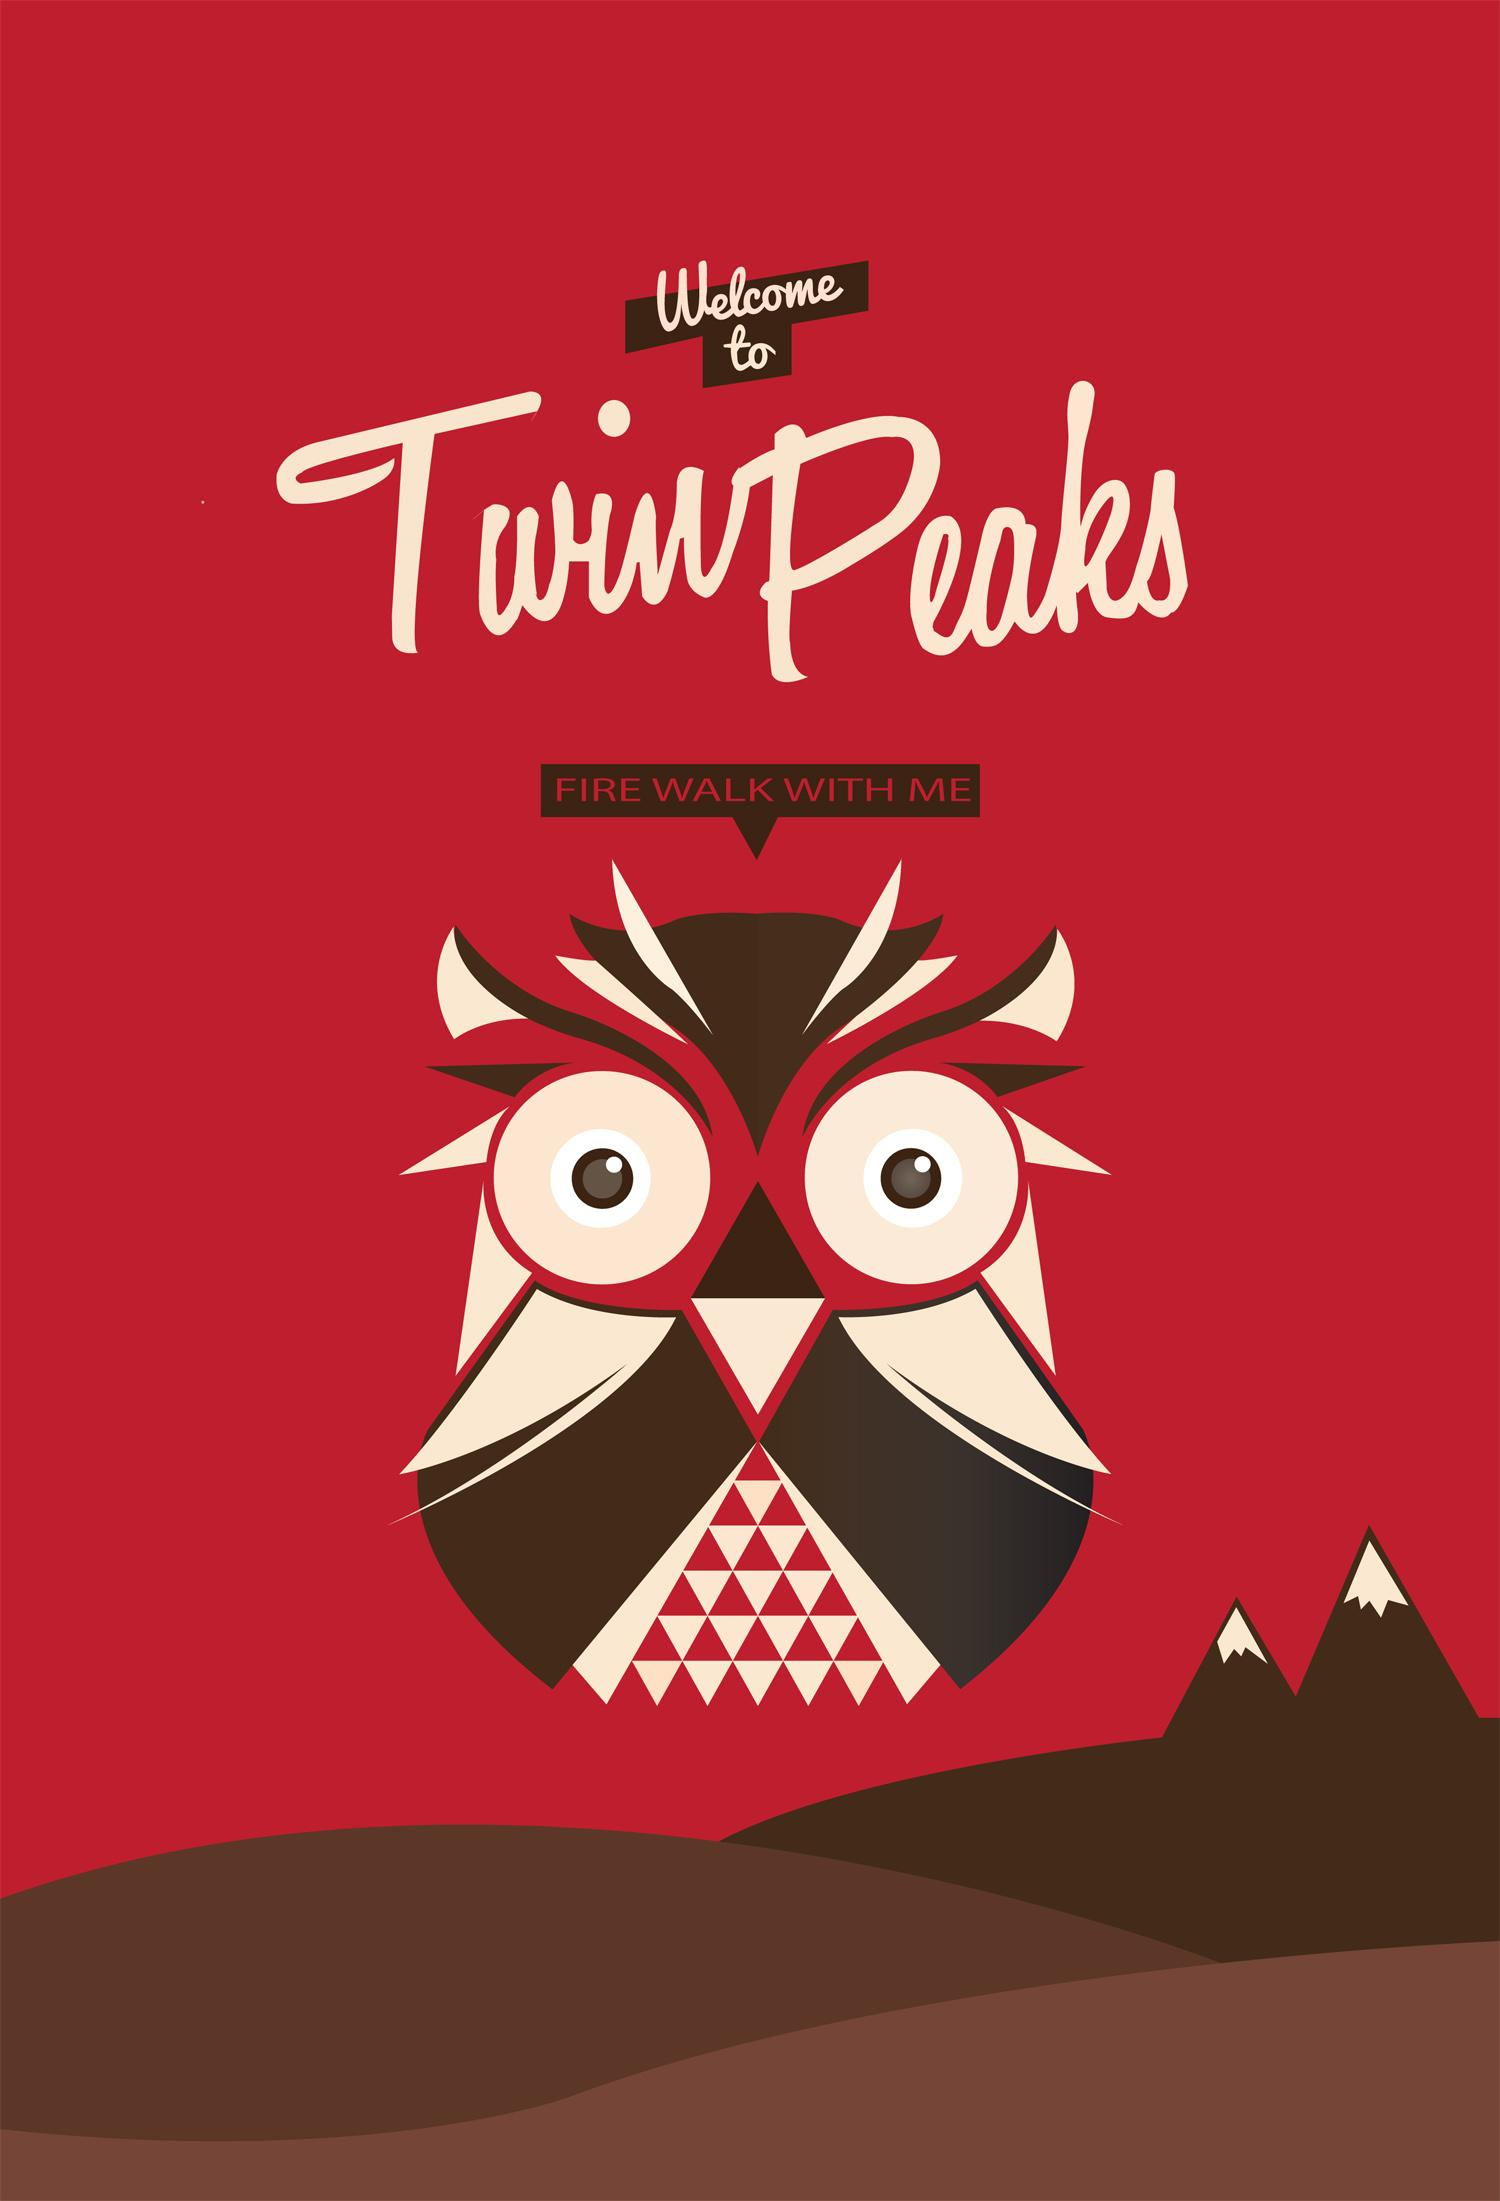 Twin Peaks - image 1 - student project